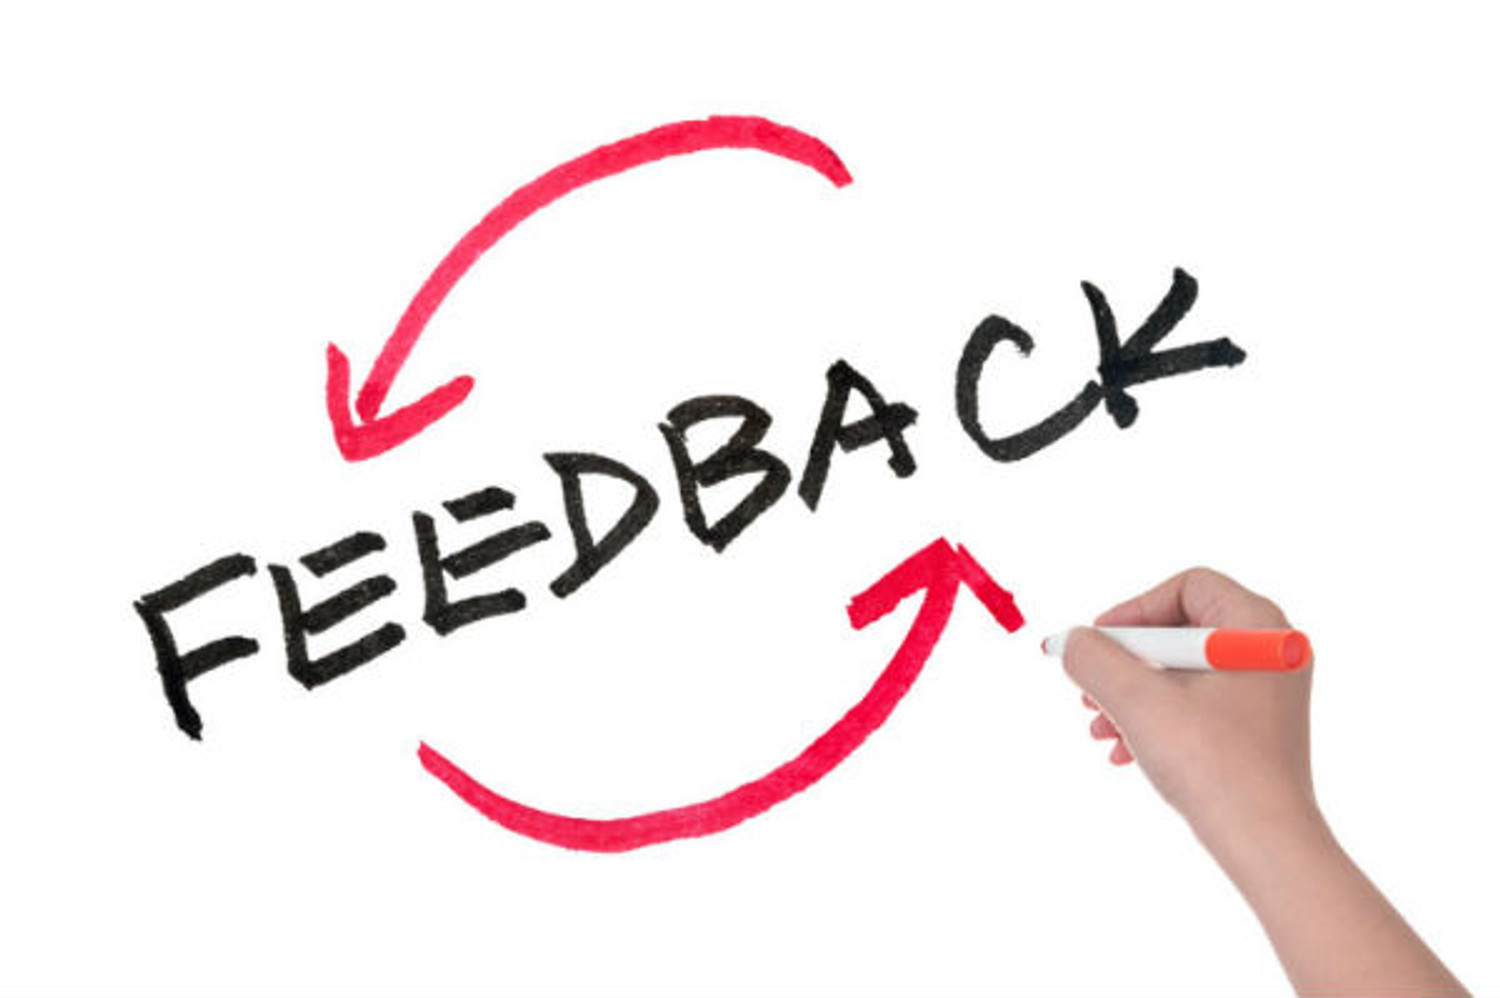 Reviews and feedback are imperative to our success